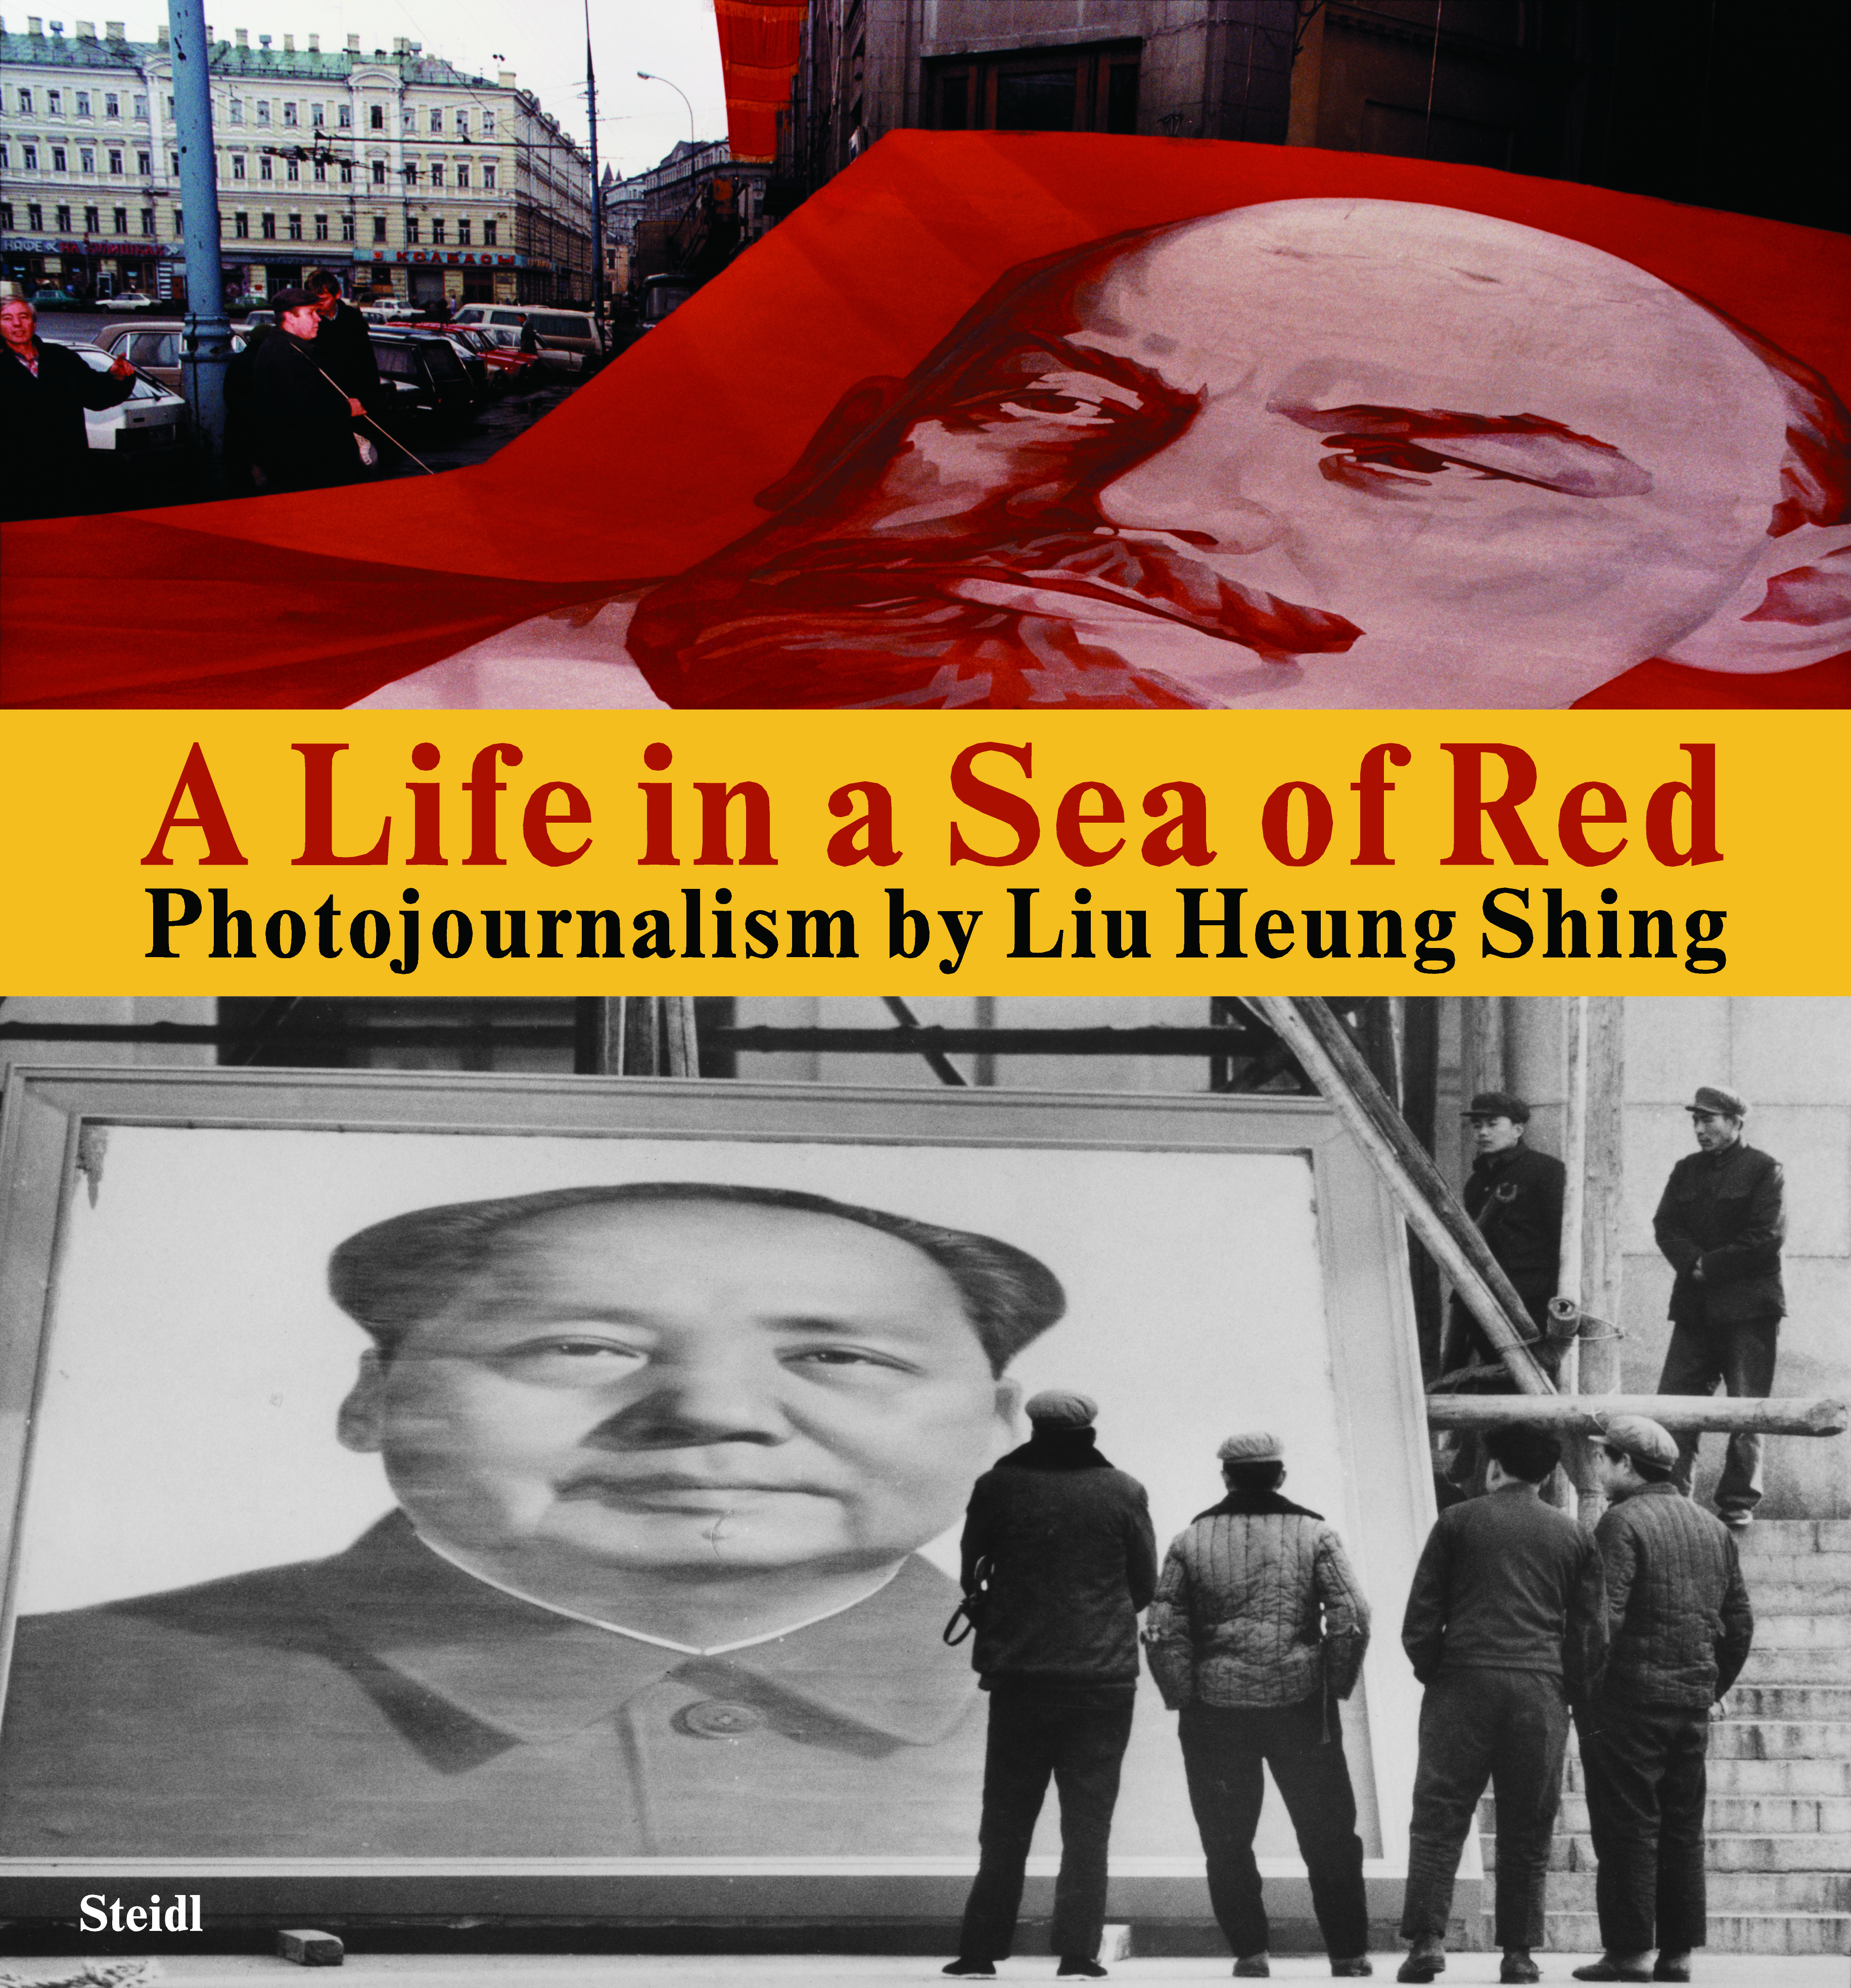 The cover of Liu Heung Shing's new book featuring his photographs of China and Russia from 1976 to 2016.